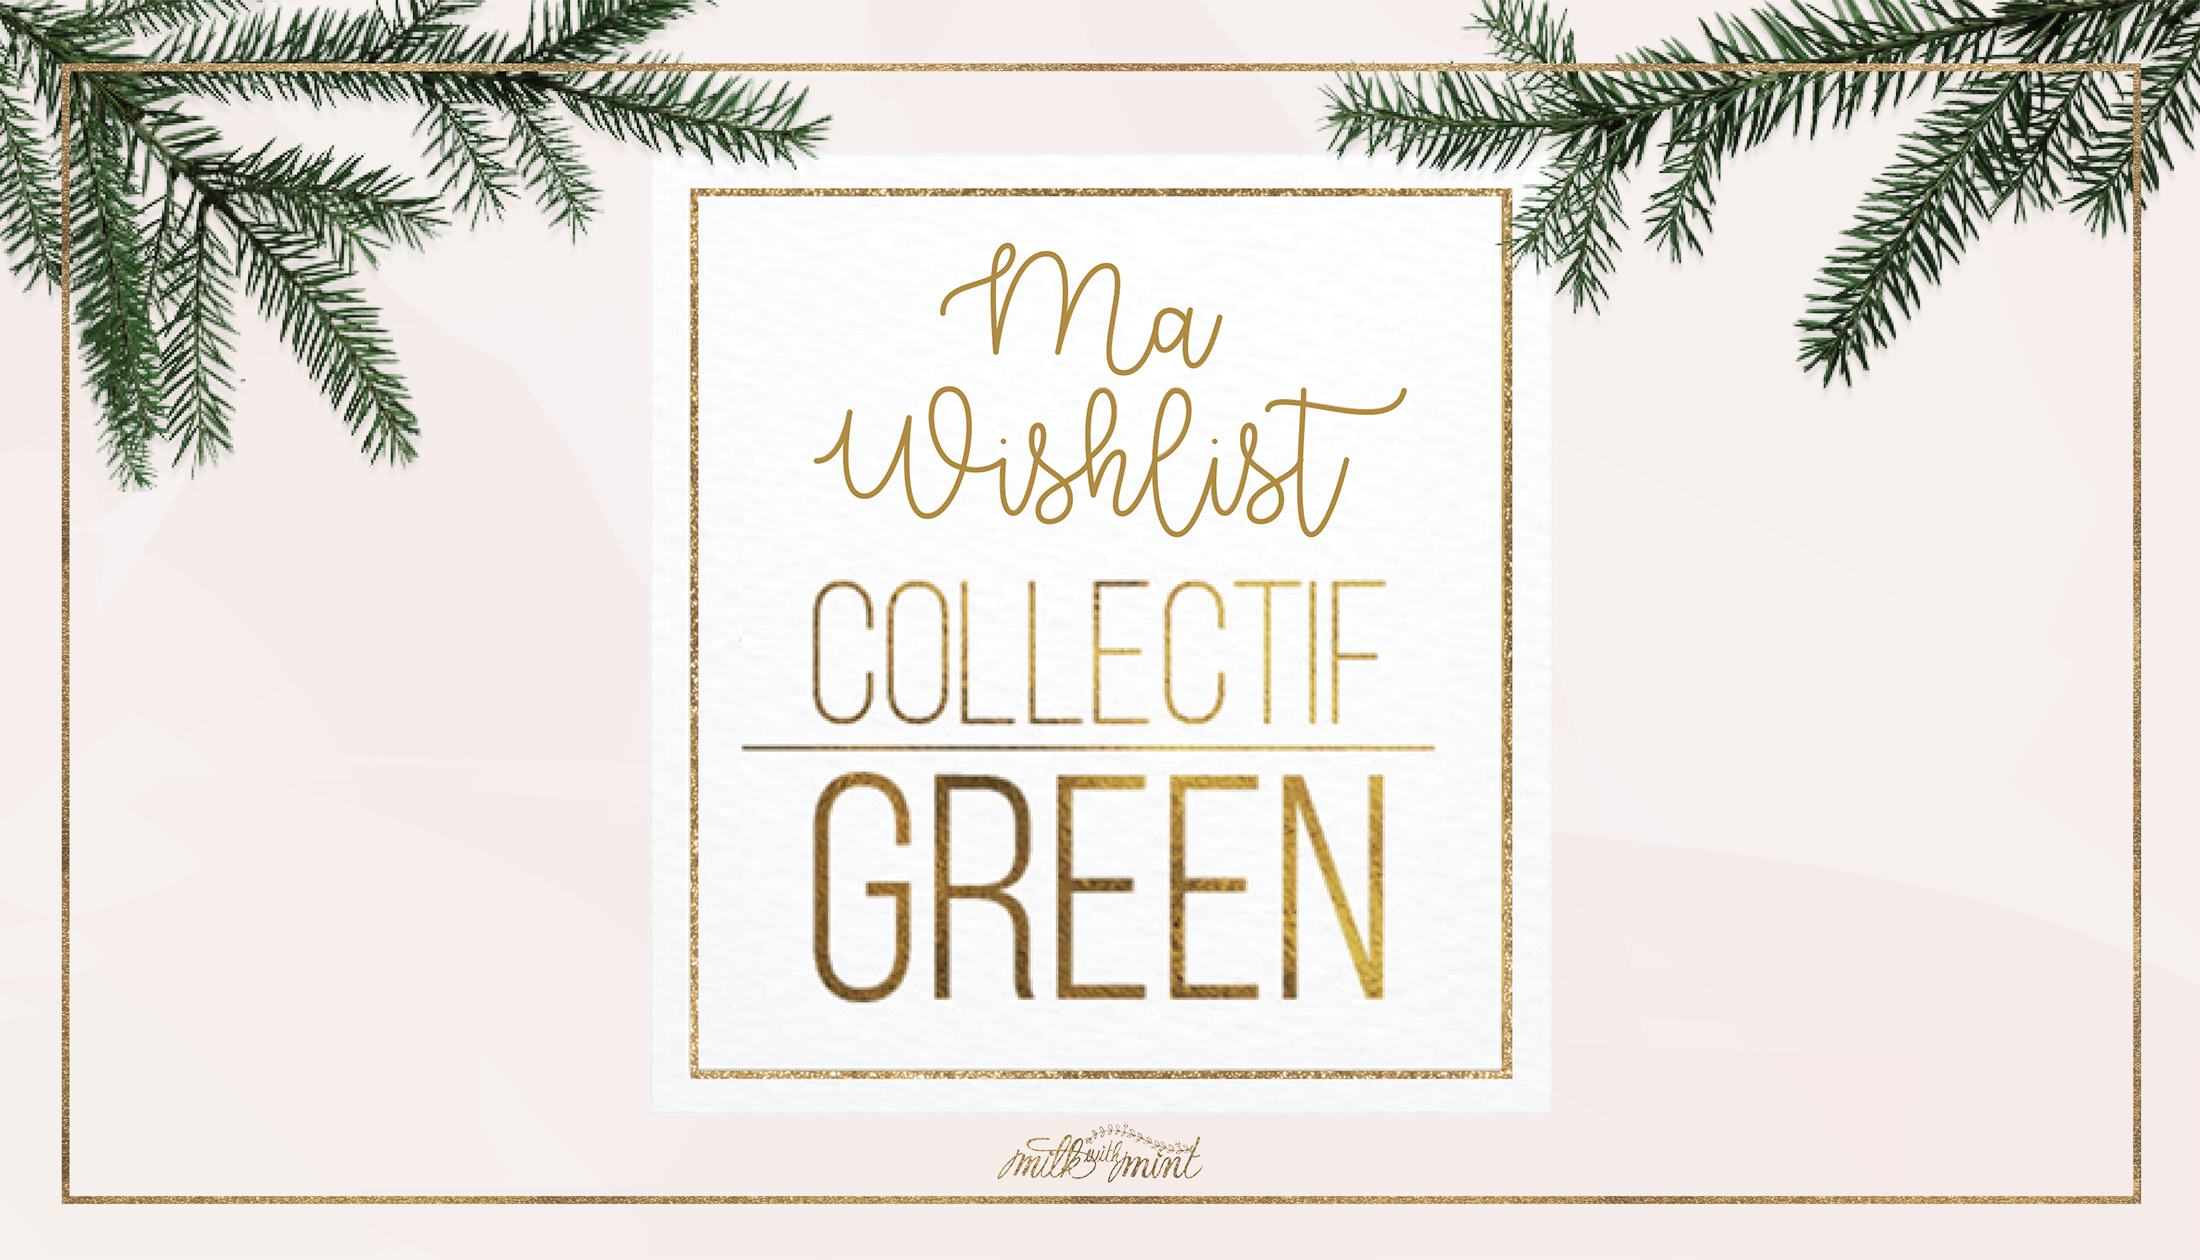 whishlist-collectif-green-2